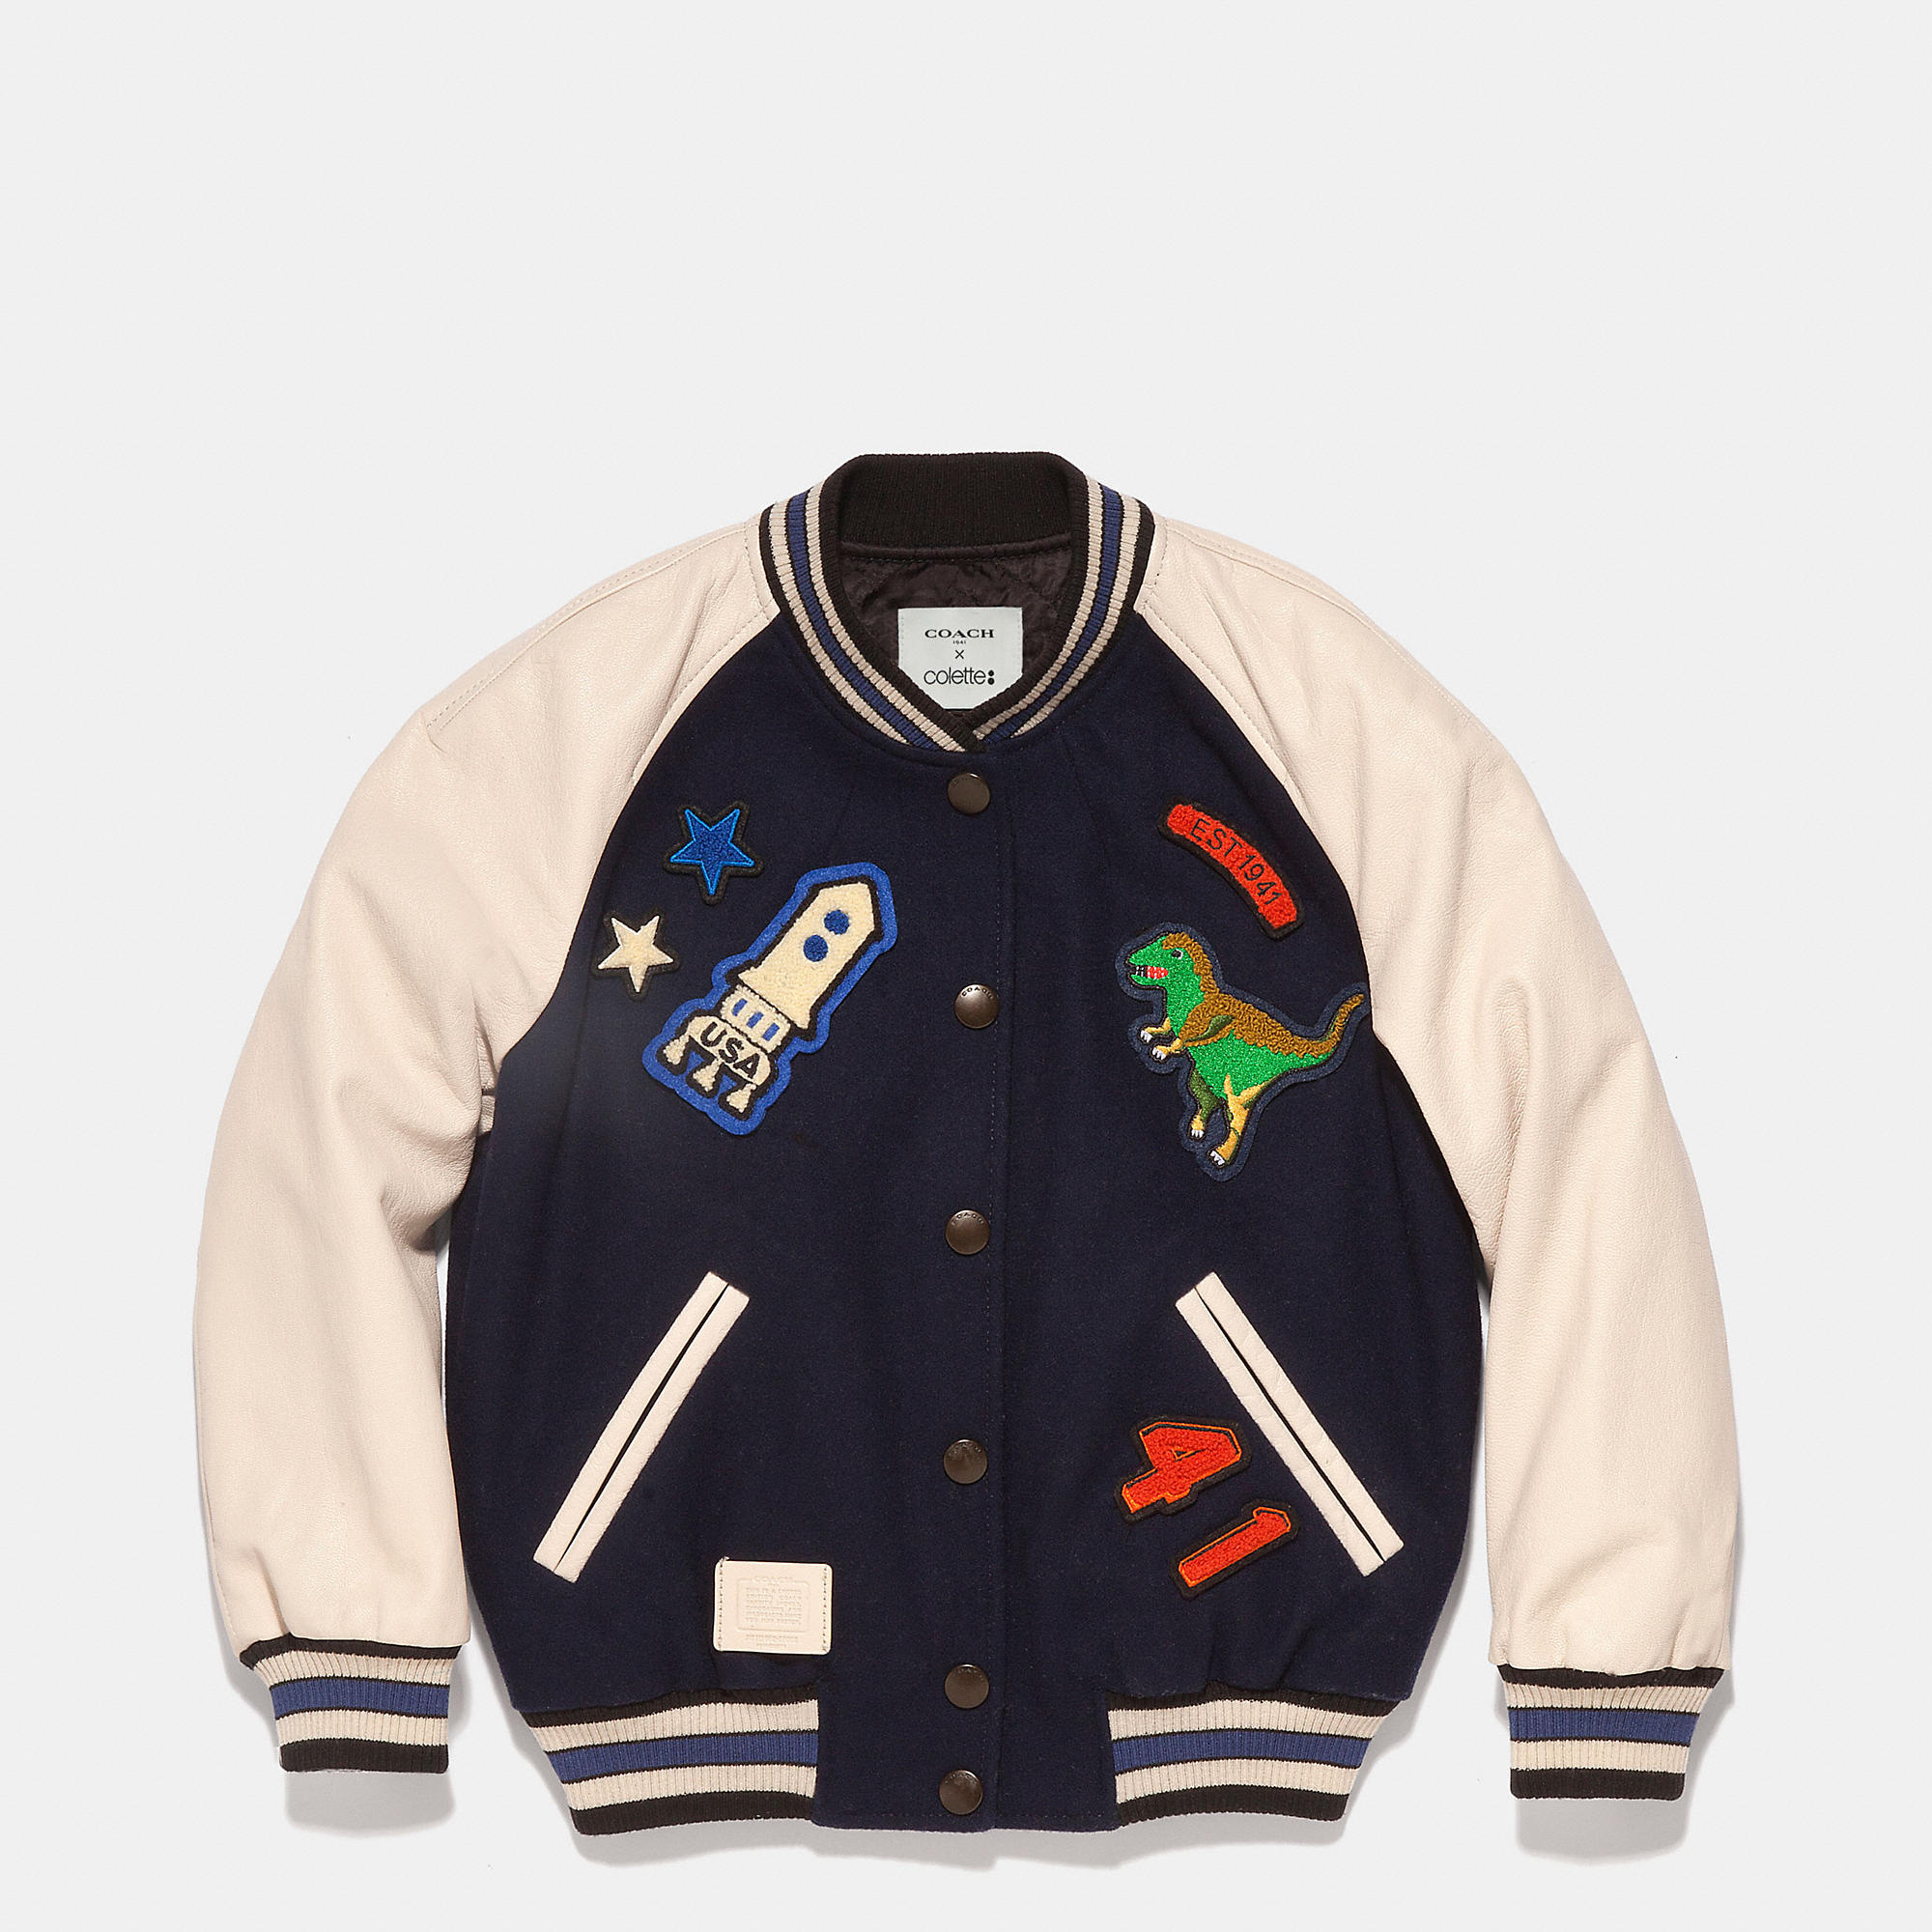 Coach Kids Varsity Jacket